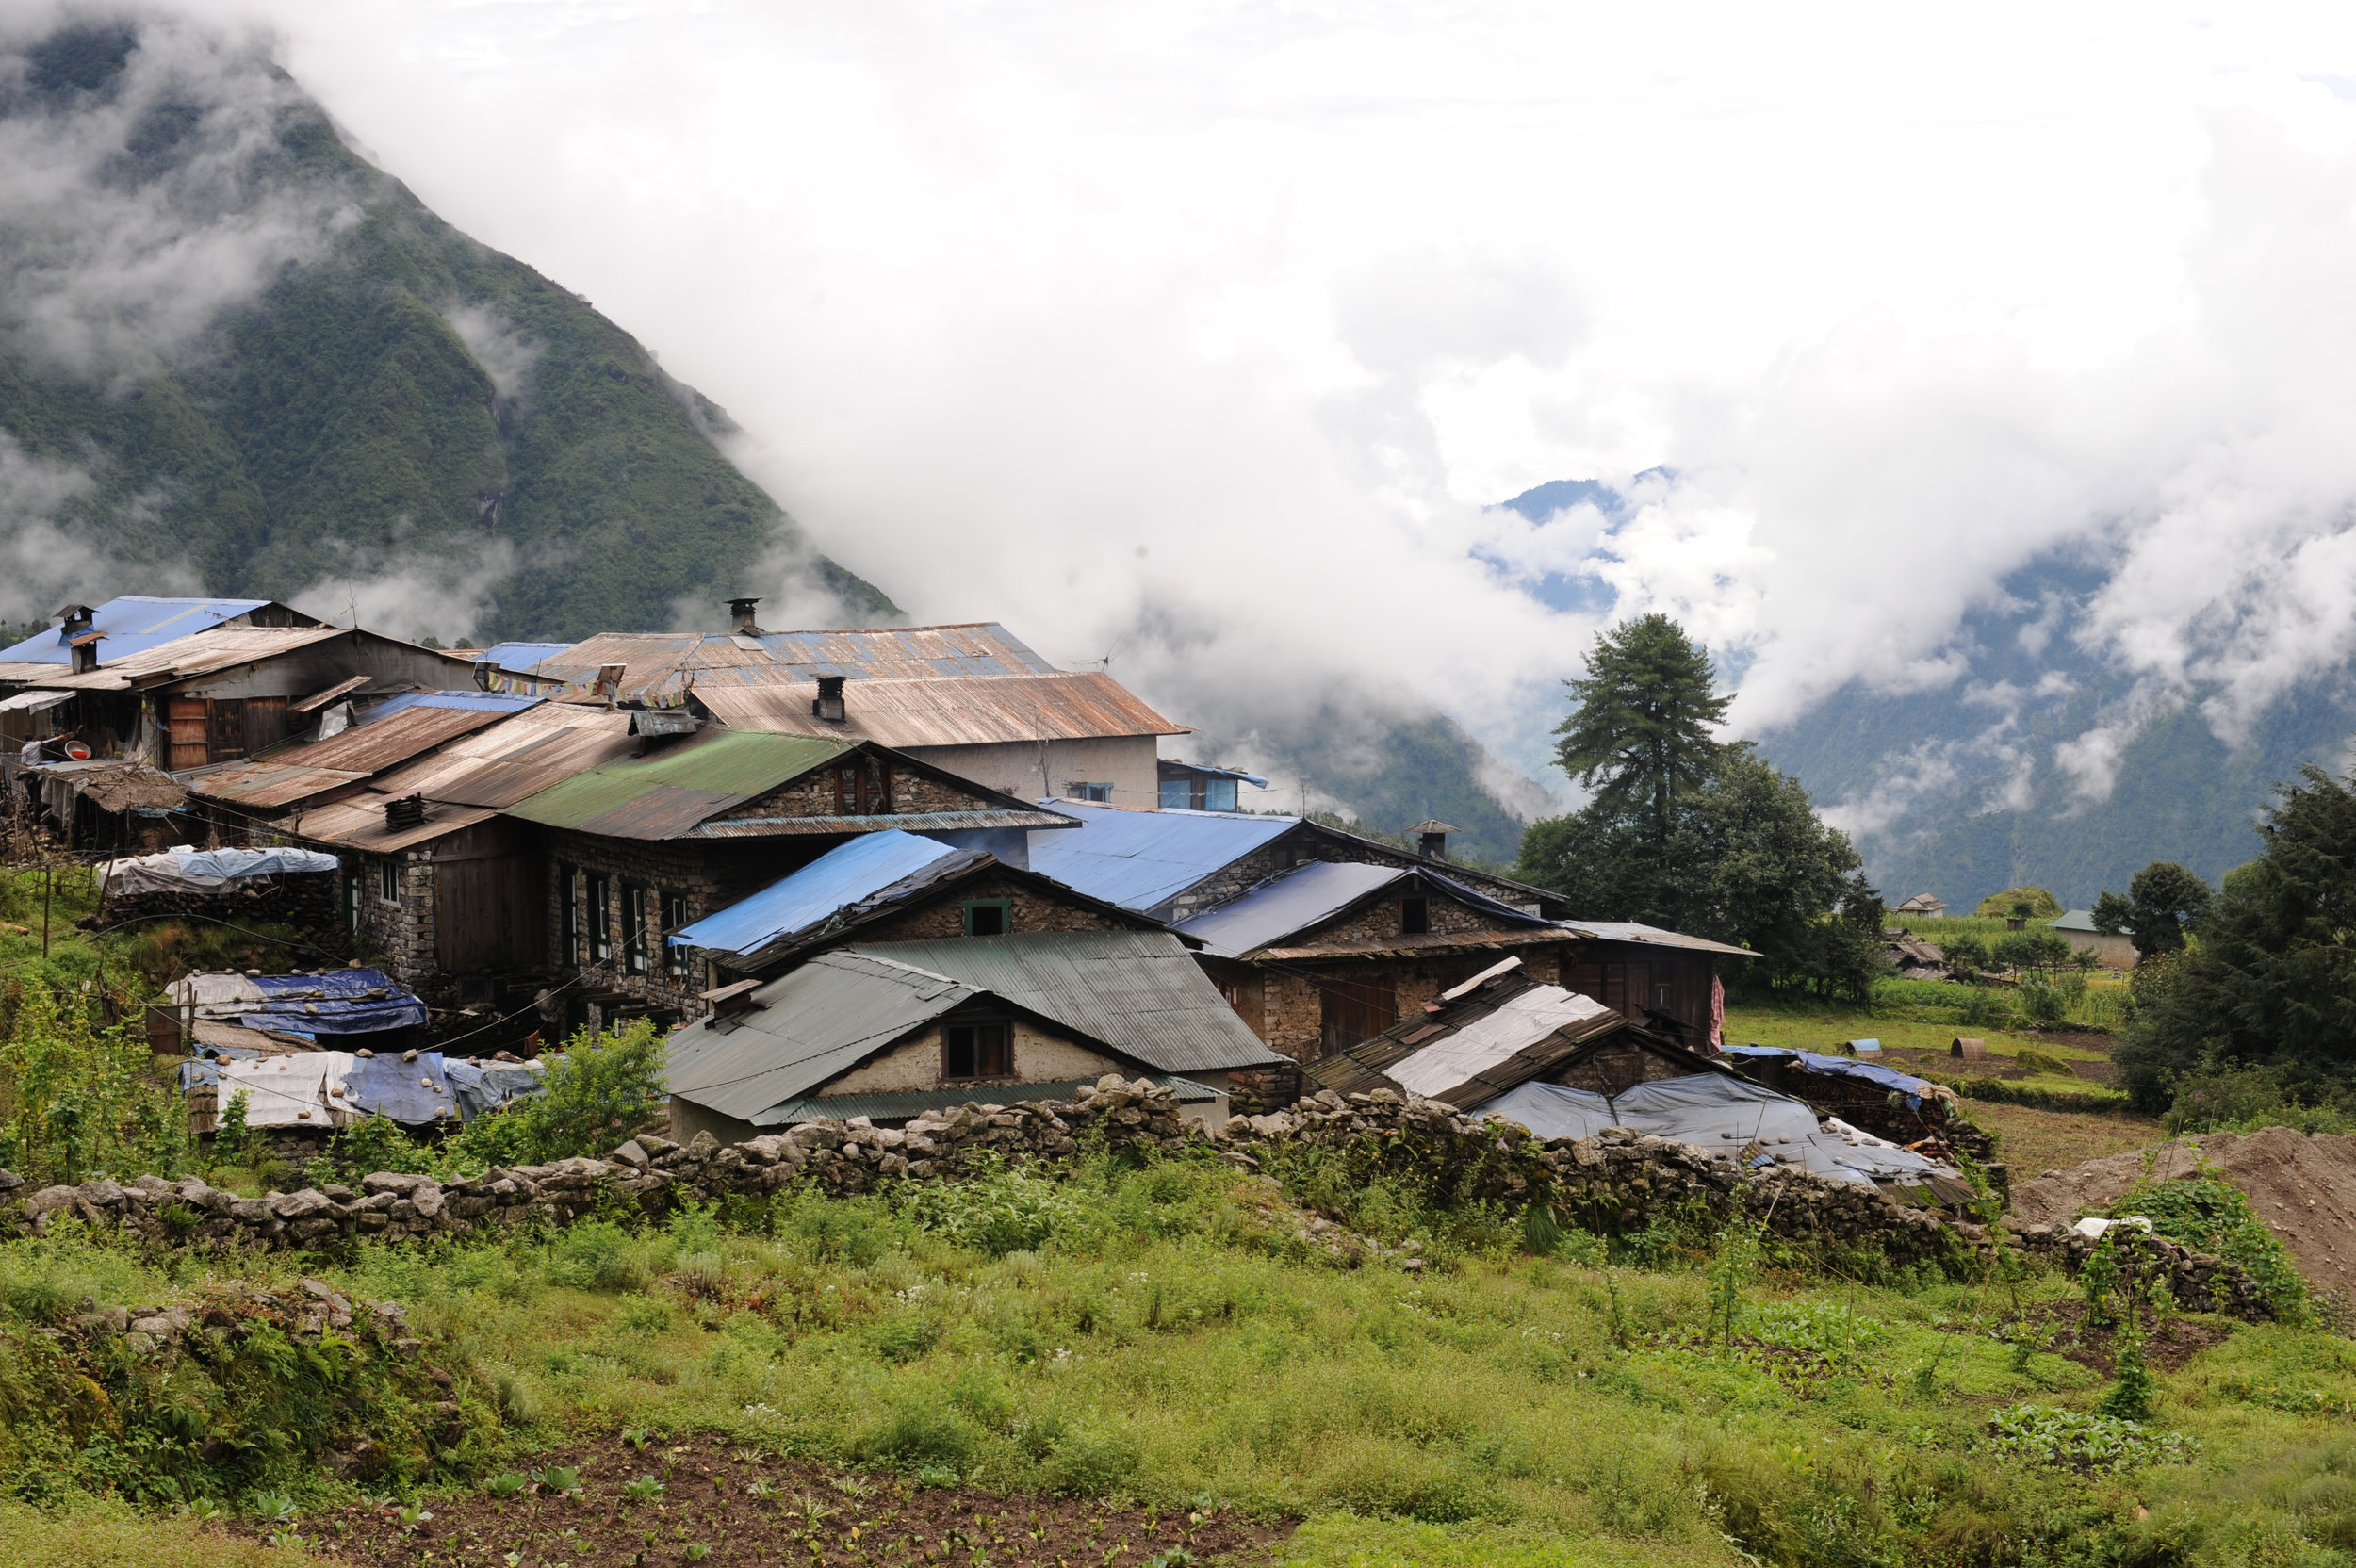 Near Lukla airport, where our expedition begins.